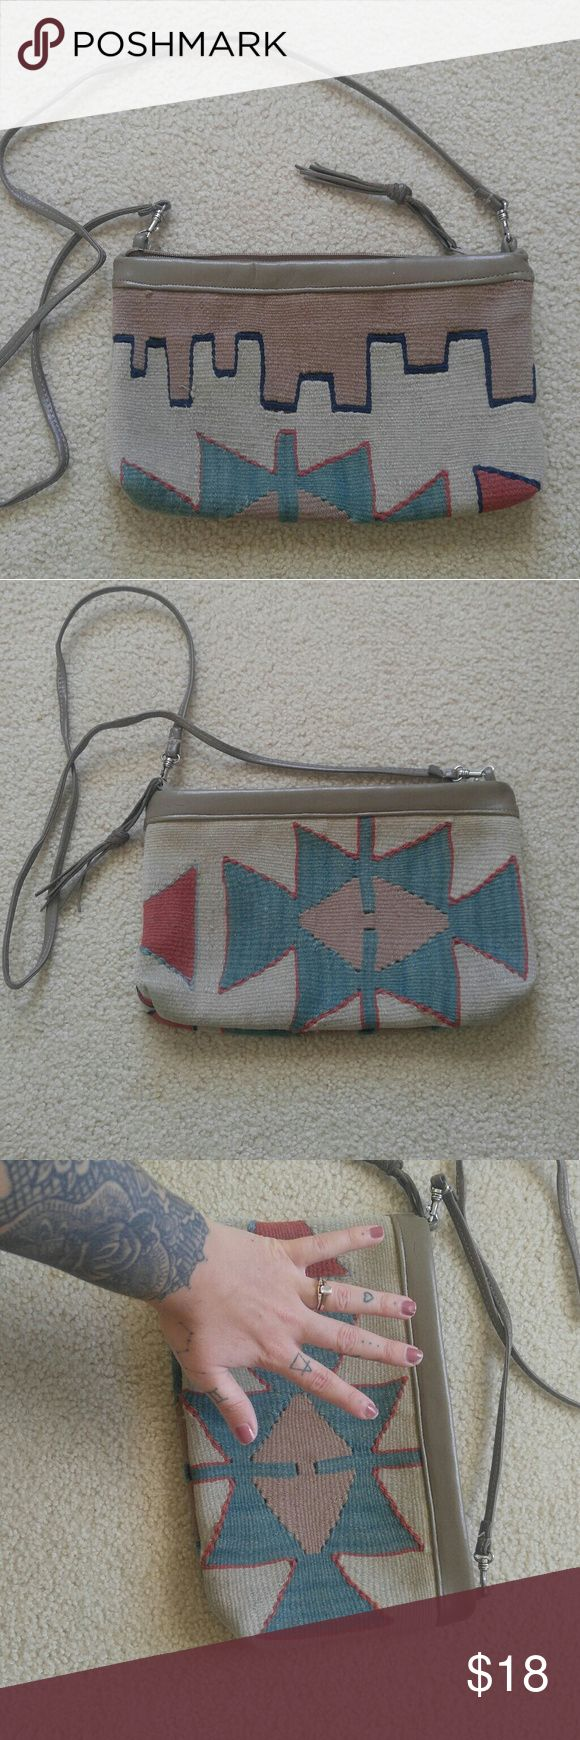 Vintage Woven Aztec Purse Woven Aztec patterned crossbody bag. In great condition and so cute for the fall! Similar to free people, humble hilo, nena & co, anthropologie, urban outffiters, etc. Vintage Bags Crossbody Bags